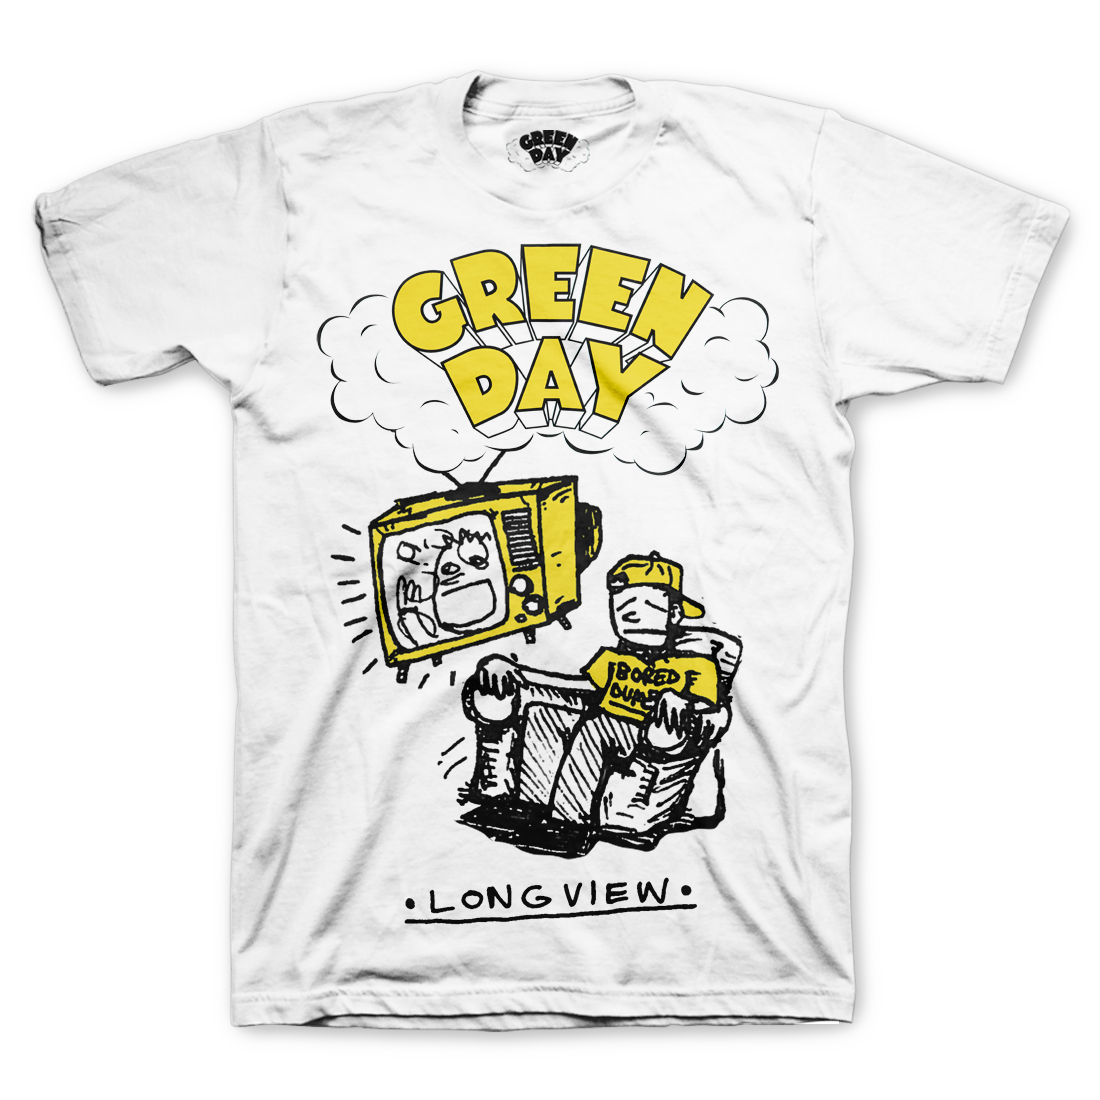 fd85e1fdb73d Longview T-Shirt – Green Day Store